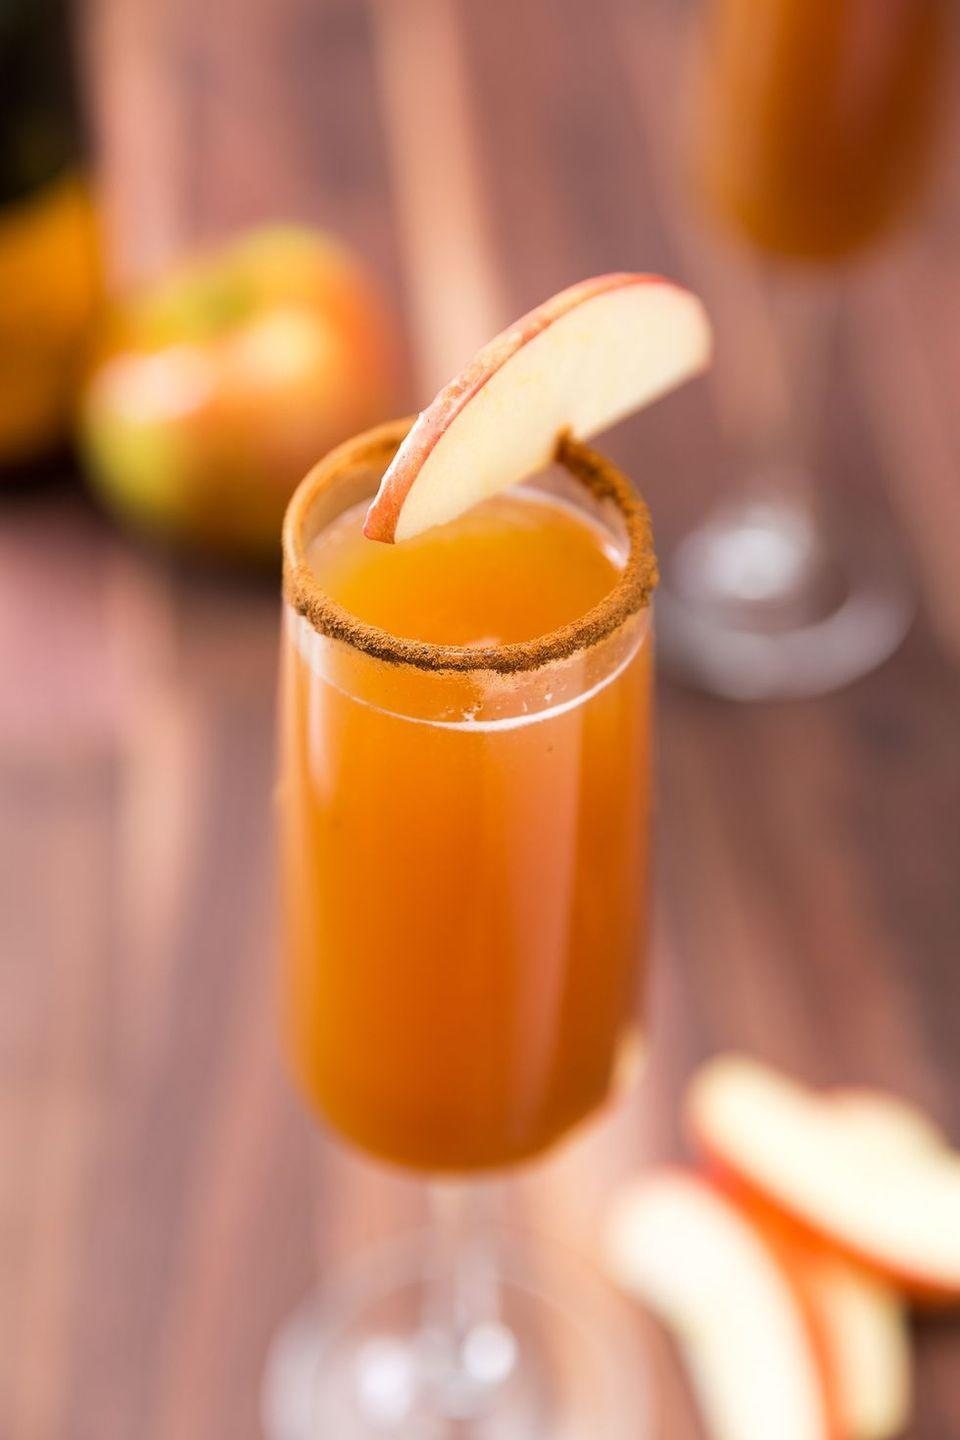 """<p>You can take your pumpkin spiced latte, we'll take an apple cider mimosas any day.</p><p><a href=""""https://www.delish.com/cooking/recipe-ideas/recipes/a46963/apple-cider-mimosas-recipe/"""" rel=""""nofollow noopener"""" target=""""_blank"""" data-ylk=""""slk:Get the recipe from Delish »"""" class=""""link rapid-noclick-resp""""><em>Get the recipe from Delish »</em></a></p>"""